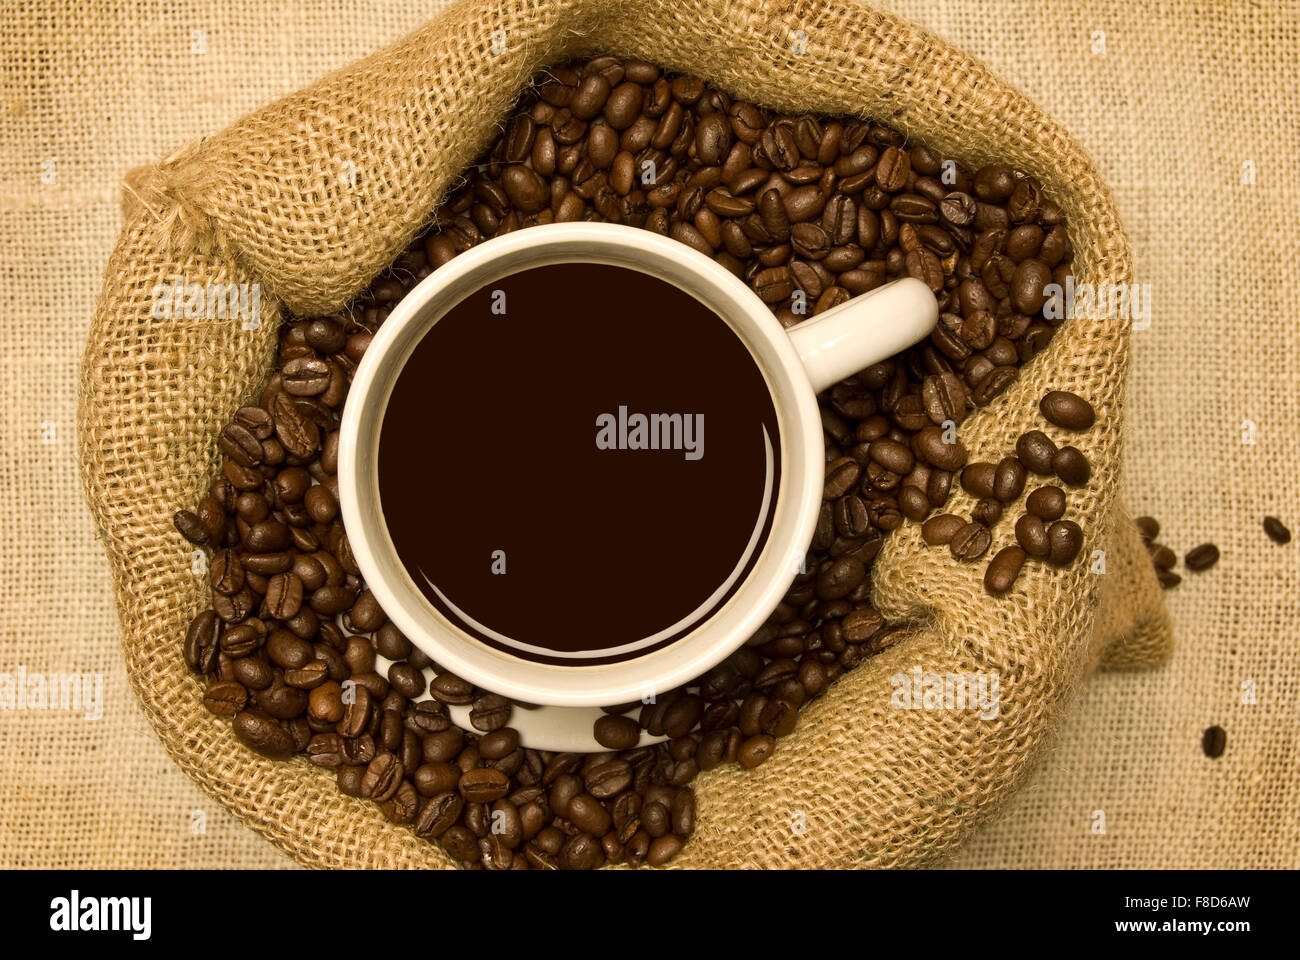 Cup of Coffee Sitting in Coffee Beans in Burlap Bag - Stock Image